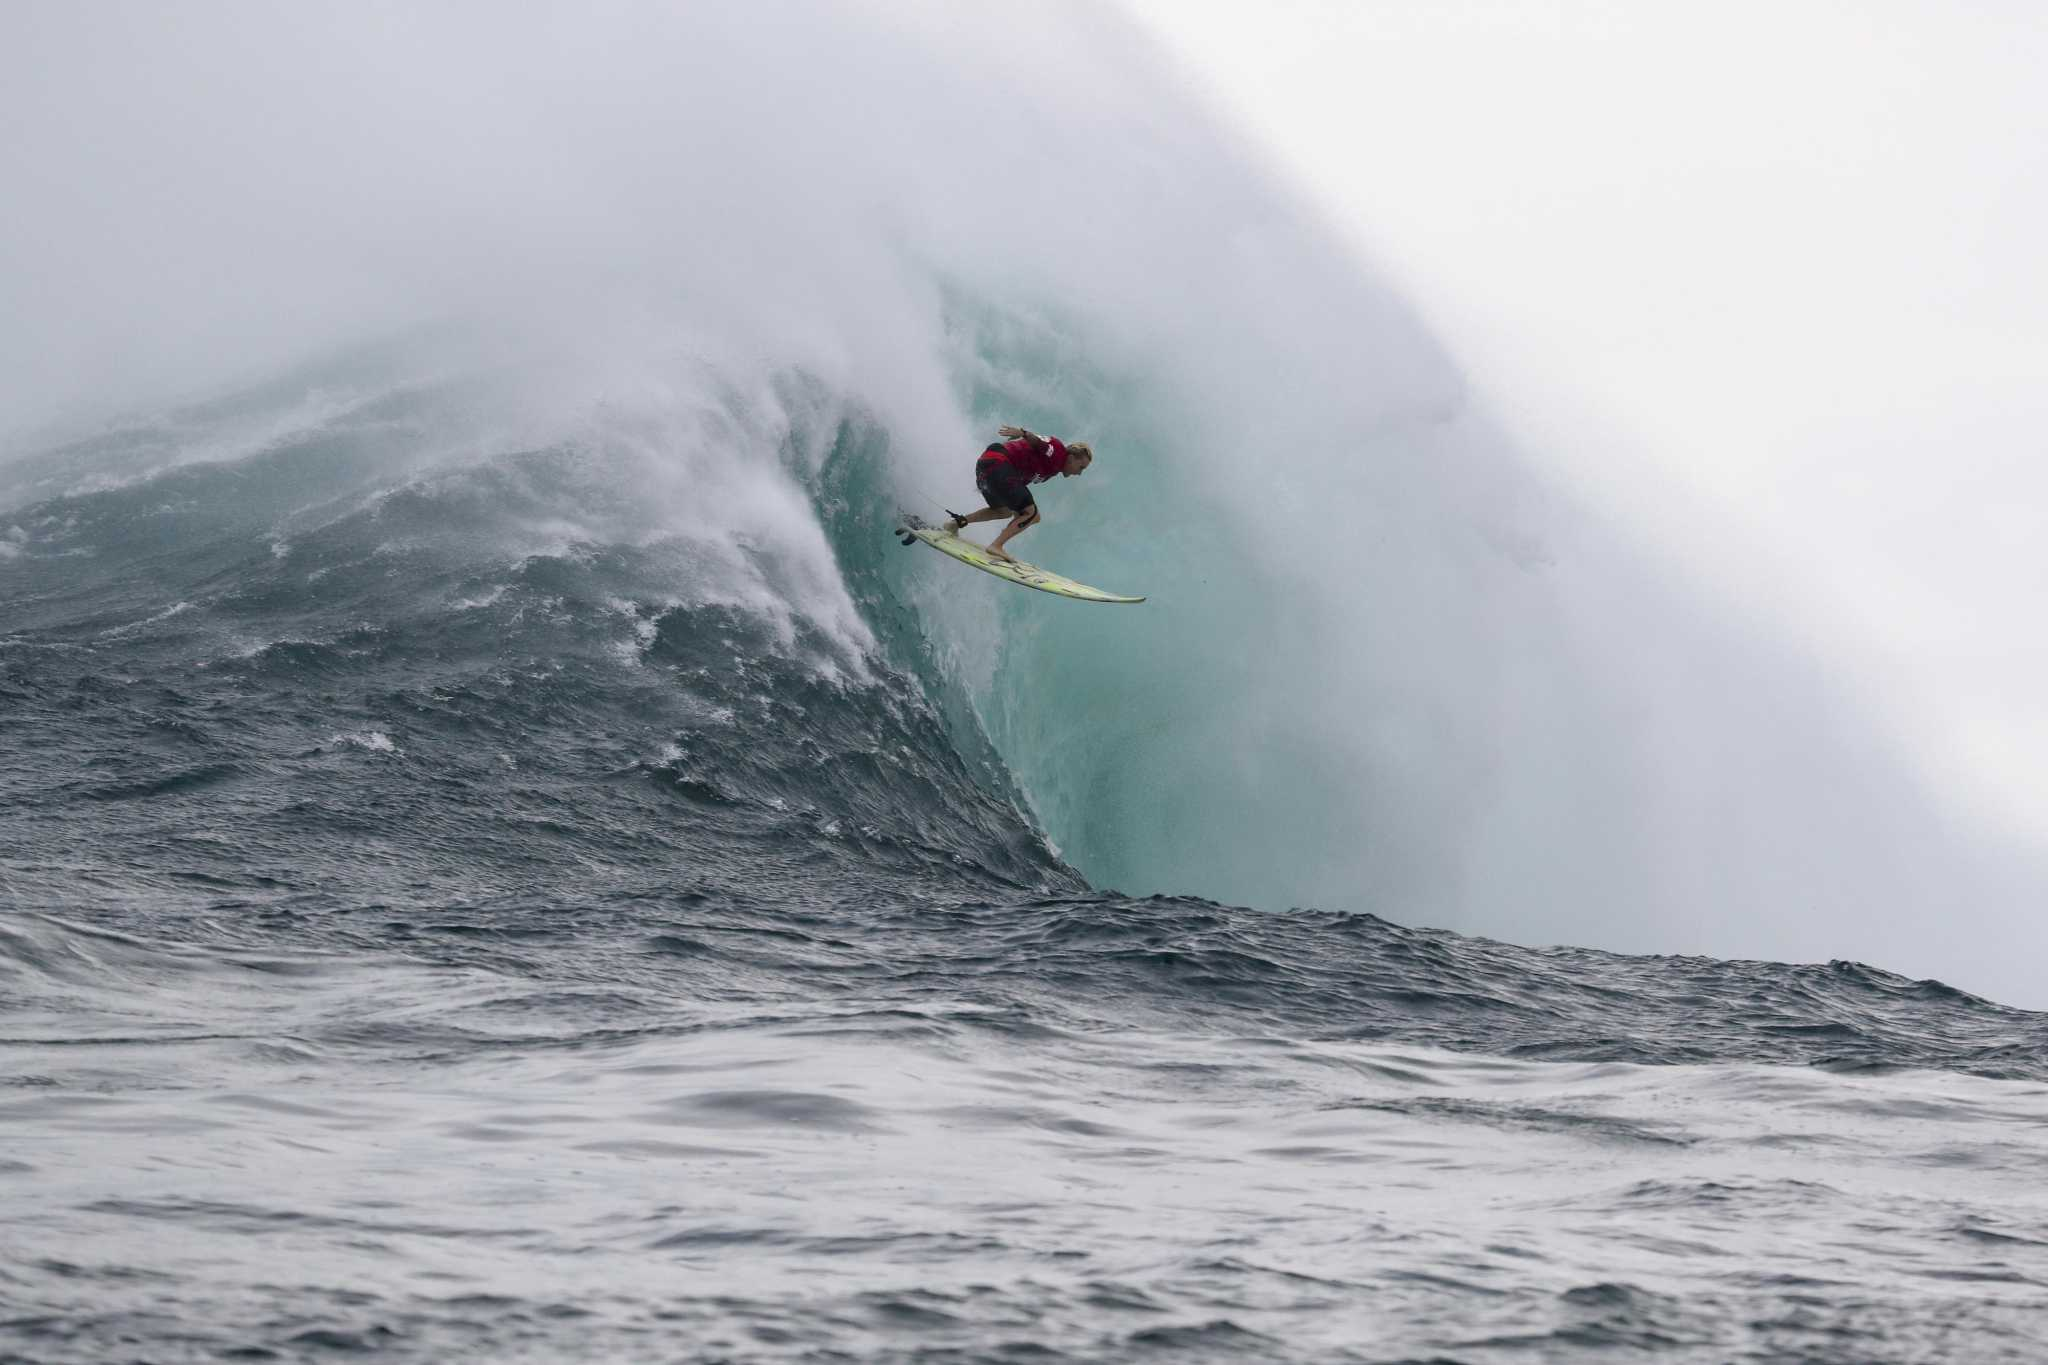 Women Surfers Battle Insane Waves In Maui Video